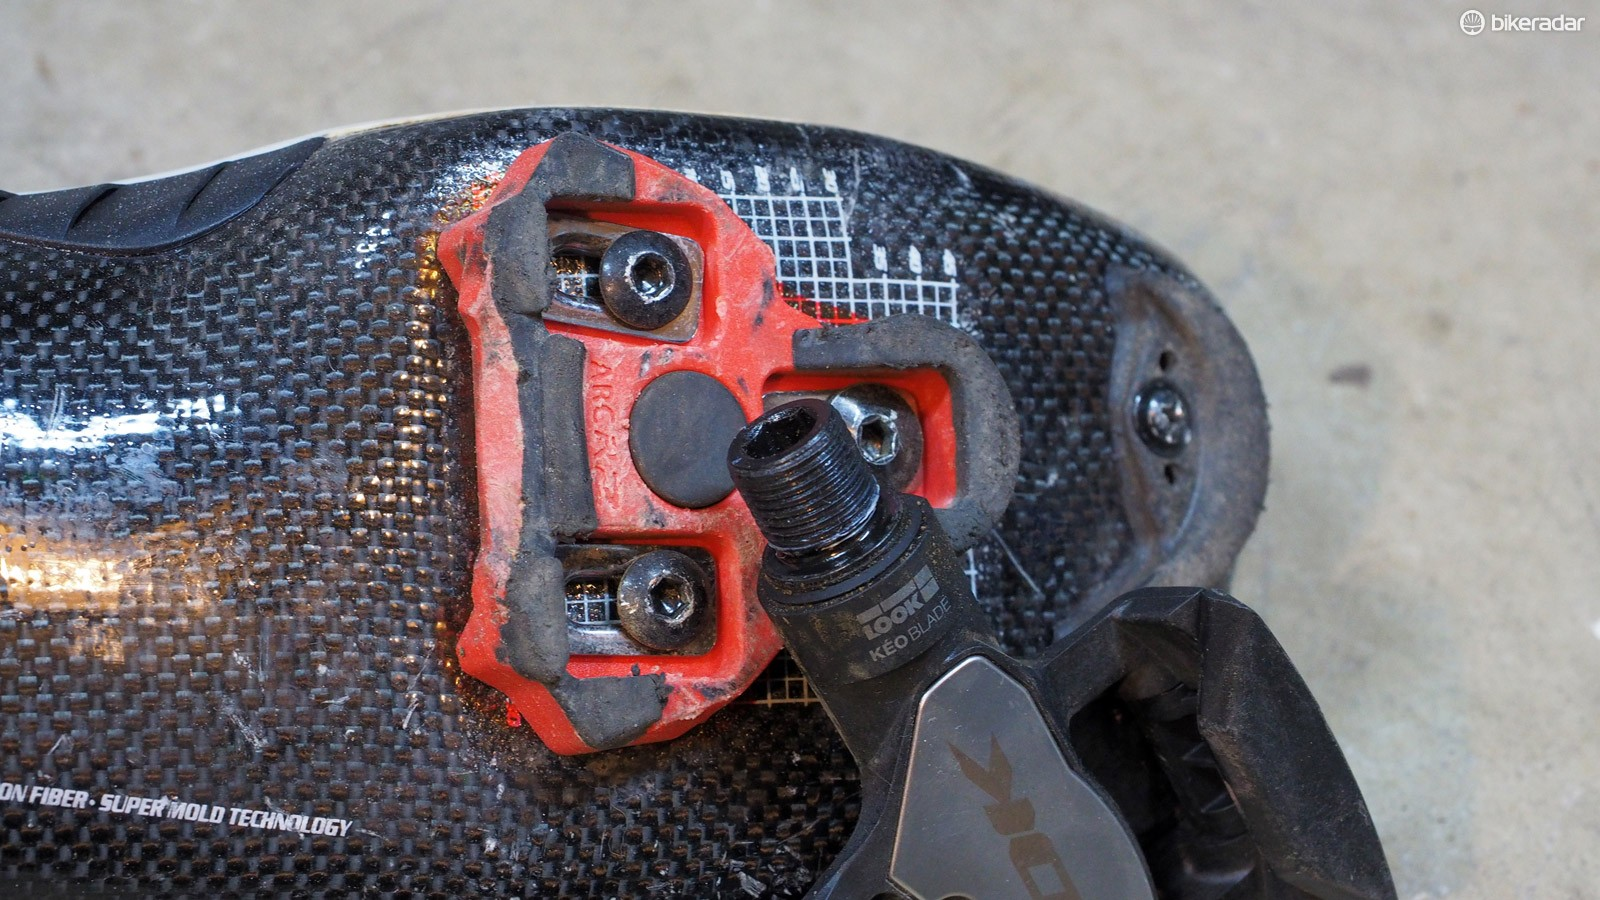 Yup, pedals and cleats can creak, too. Clean the cleats and spray them down with a wax-based furniture polish. Remove the pedals from the cranks, clean and regrease the threads, and reinstall